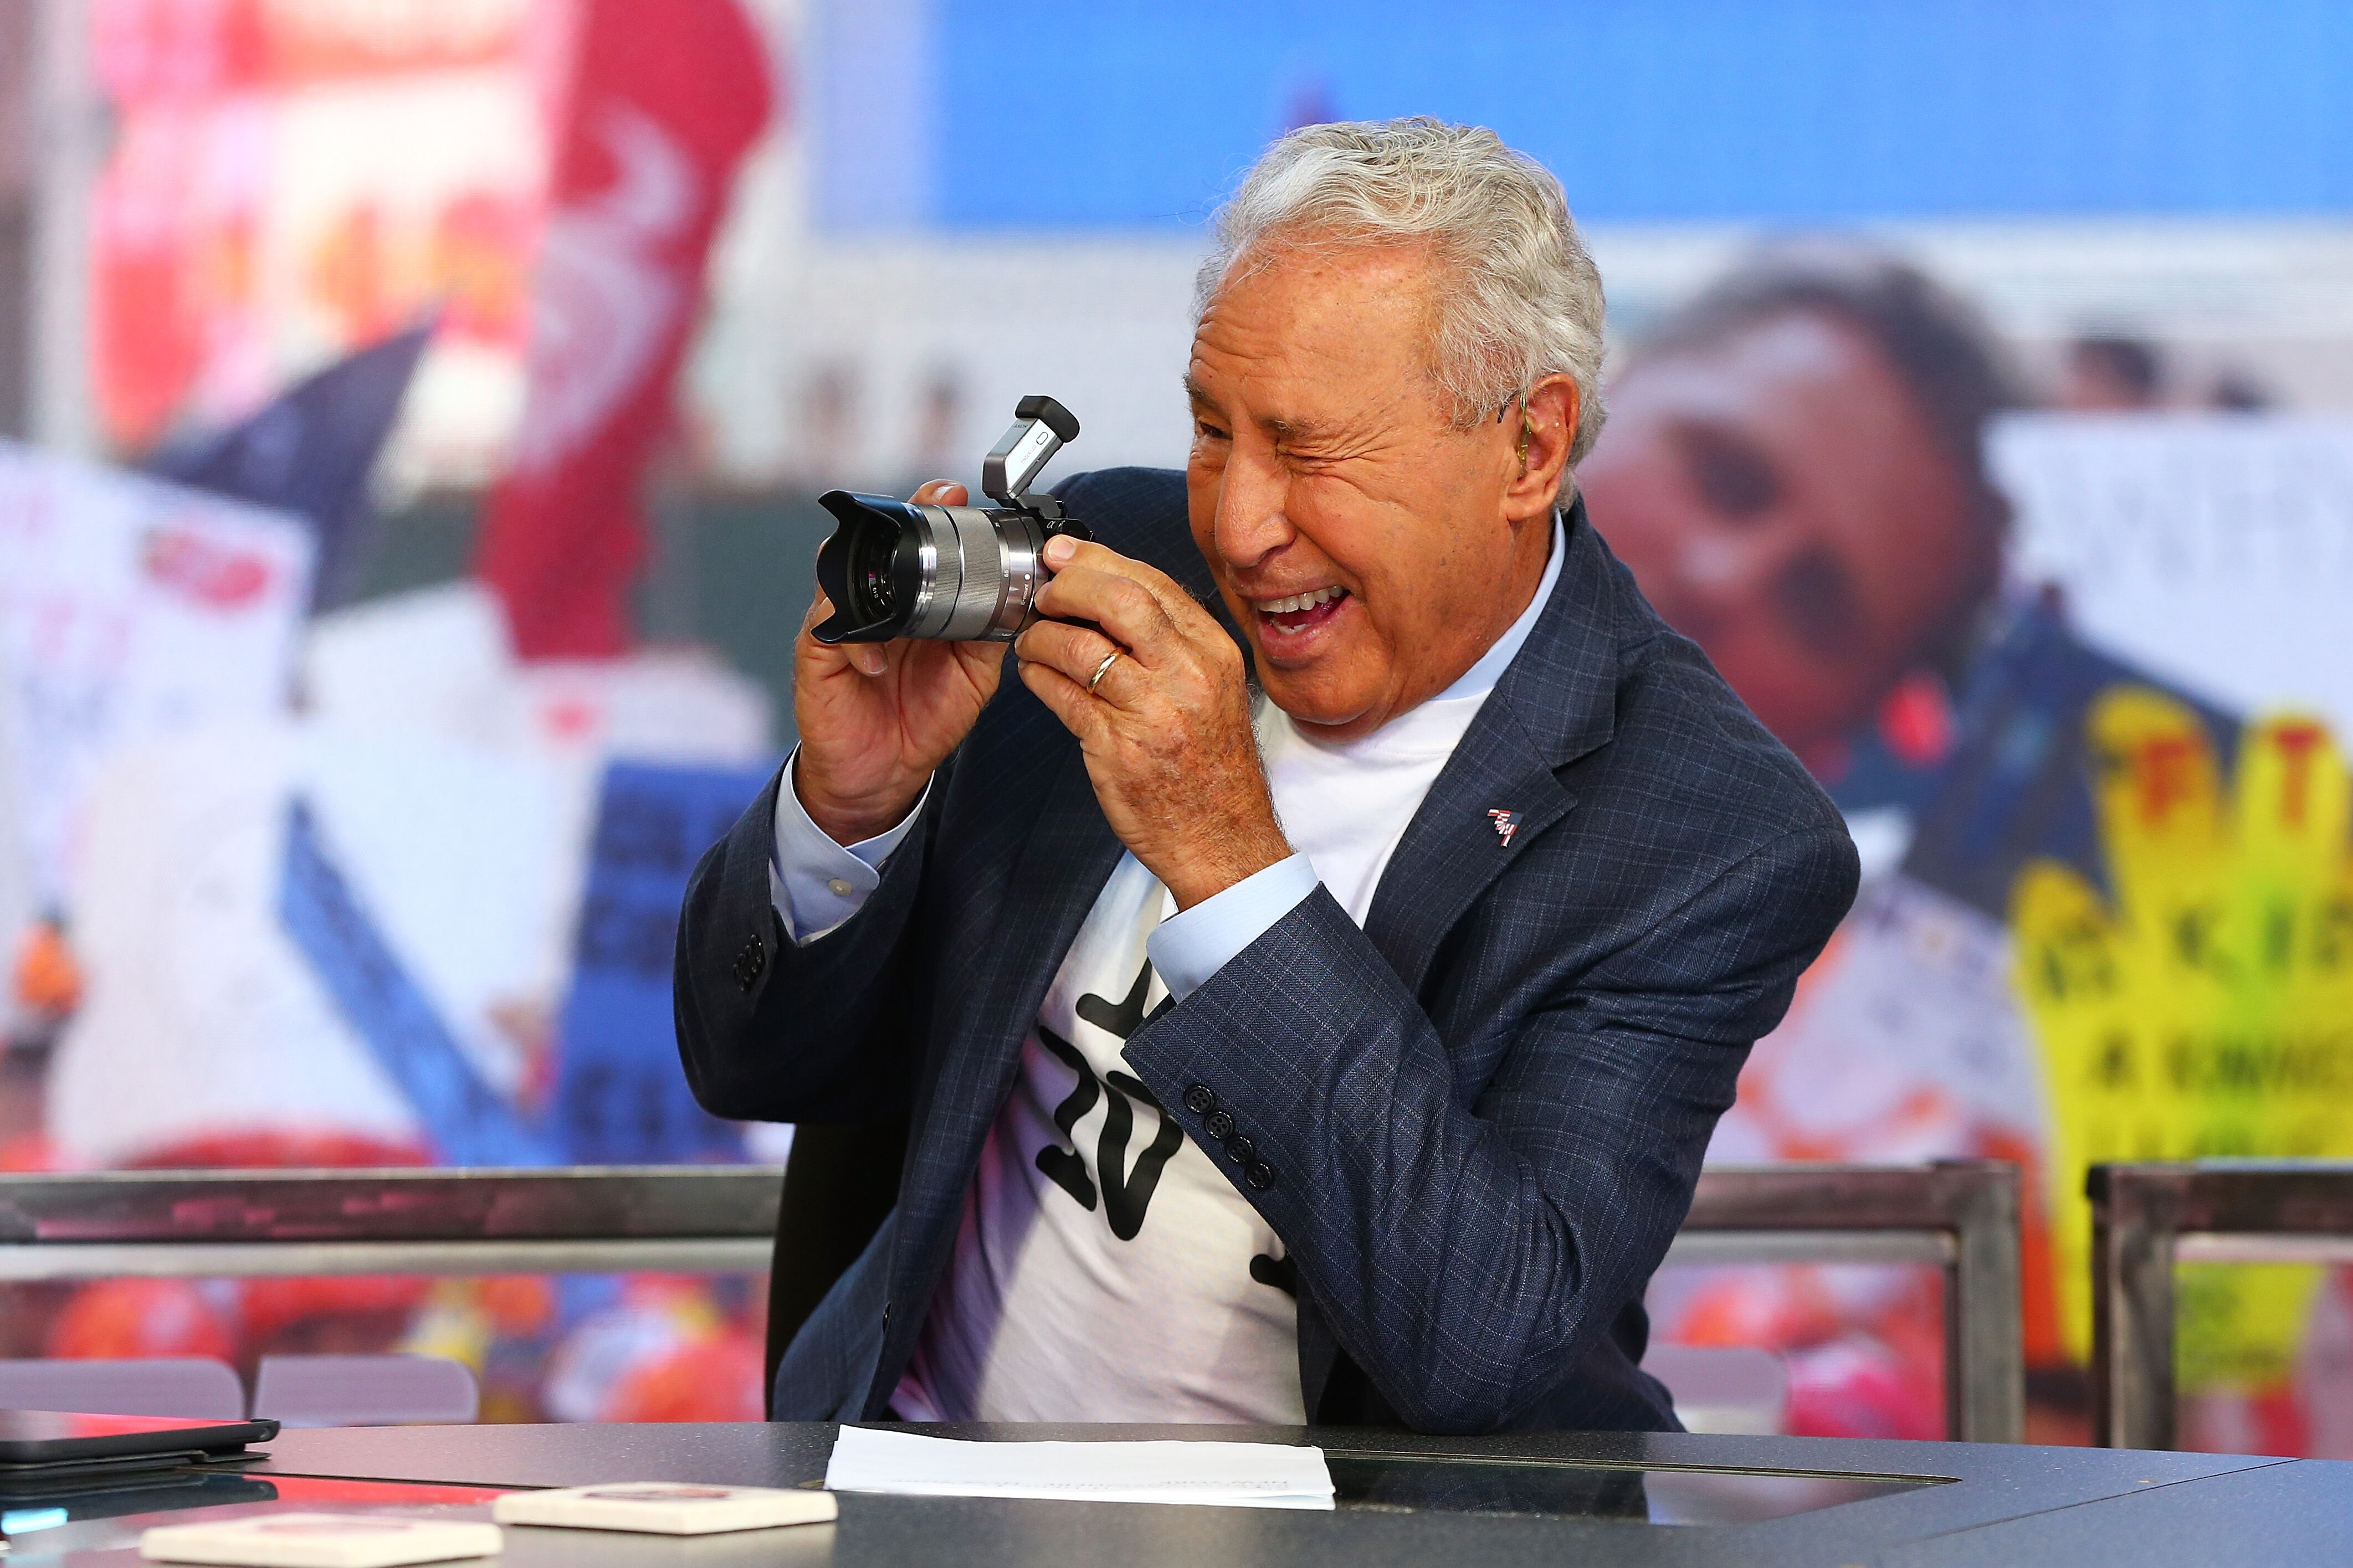 Who is the celebrity picker for College GameDay 2019 Week 6, Florida vs. Auburn?